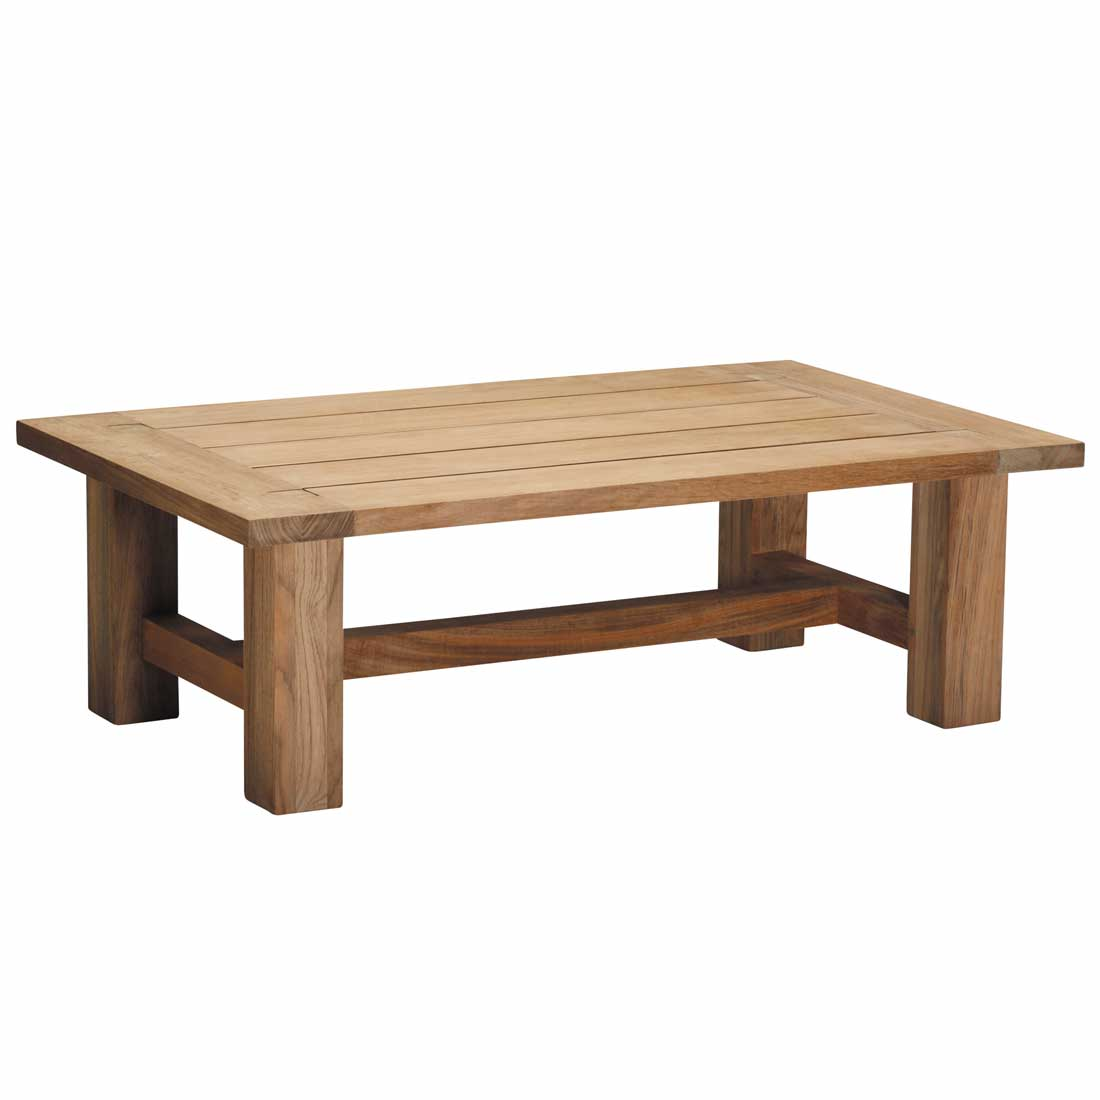 Teak Burger Coffee Table: Croquet Outdoor Teak Coffee Table